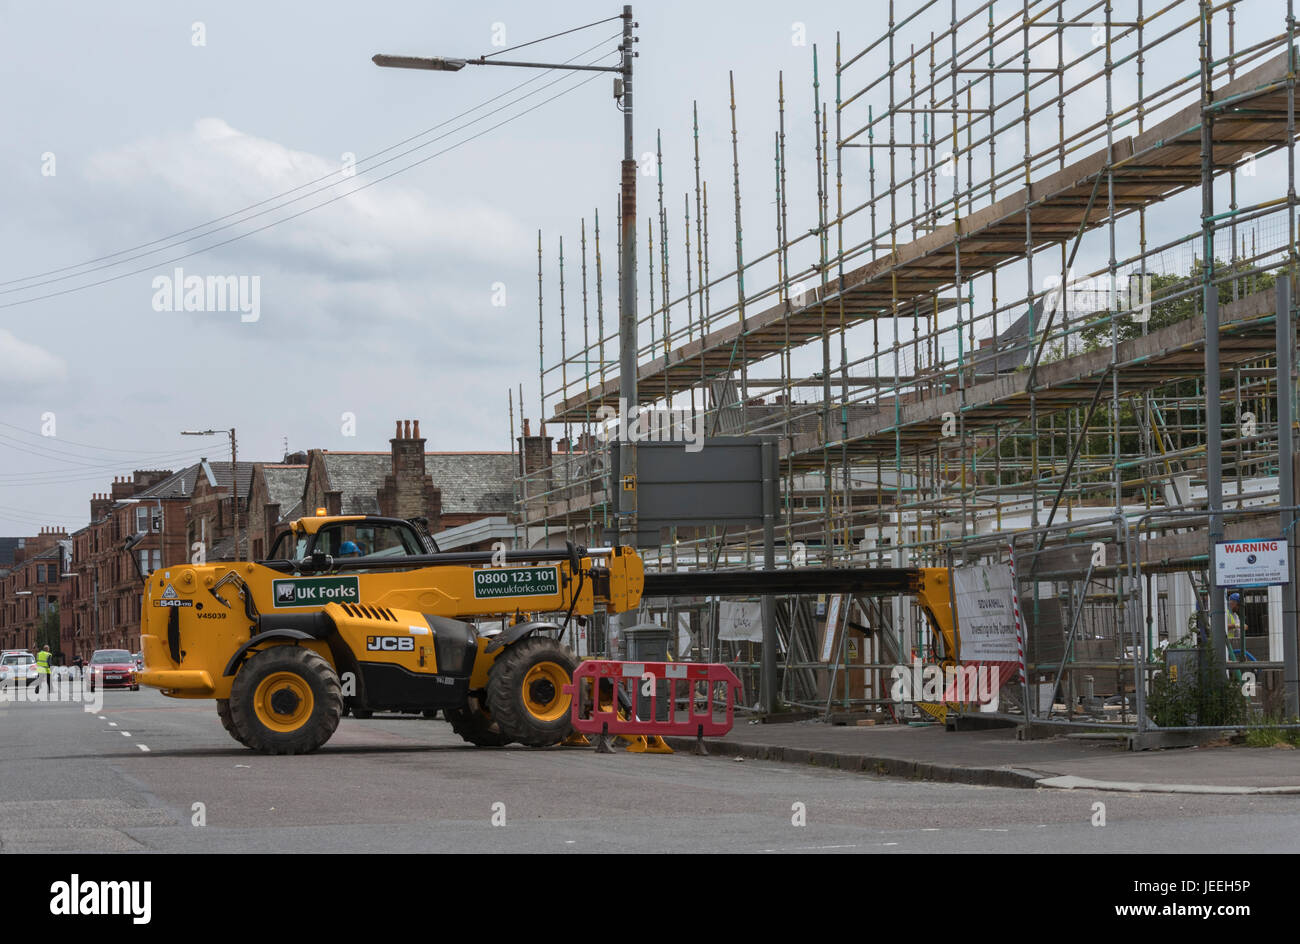 Telescopic Lift Stockfotos & Telescopic Lift Bilder - Alamy